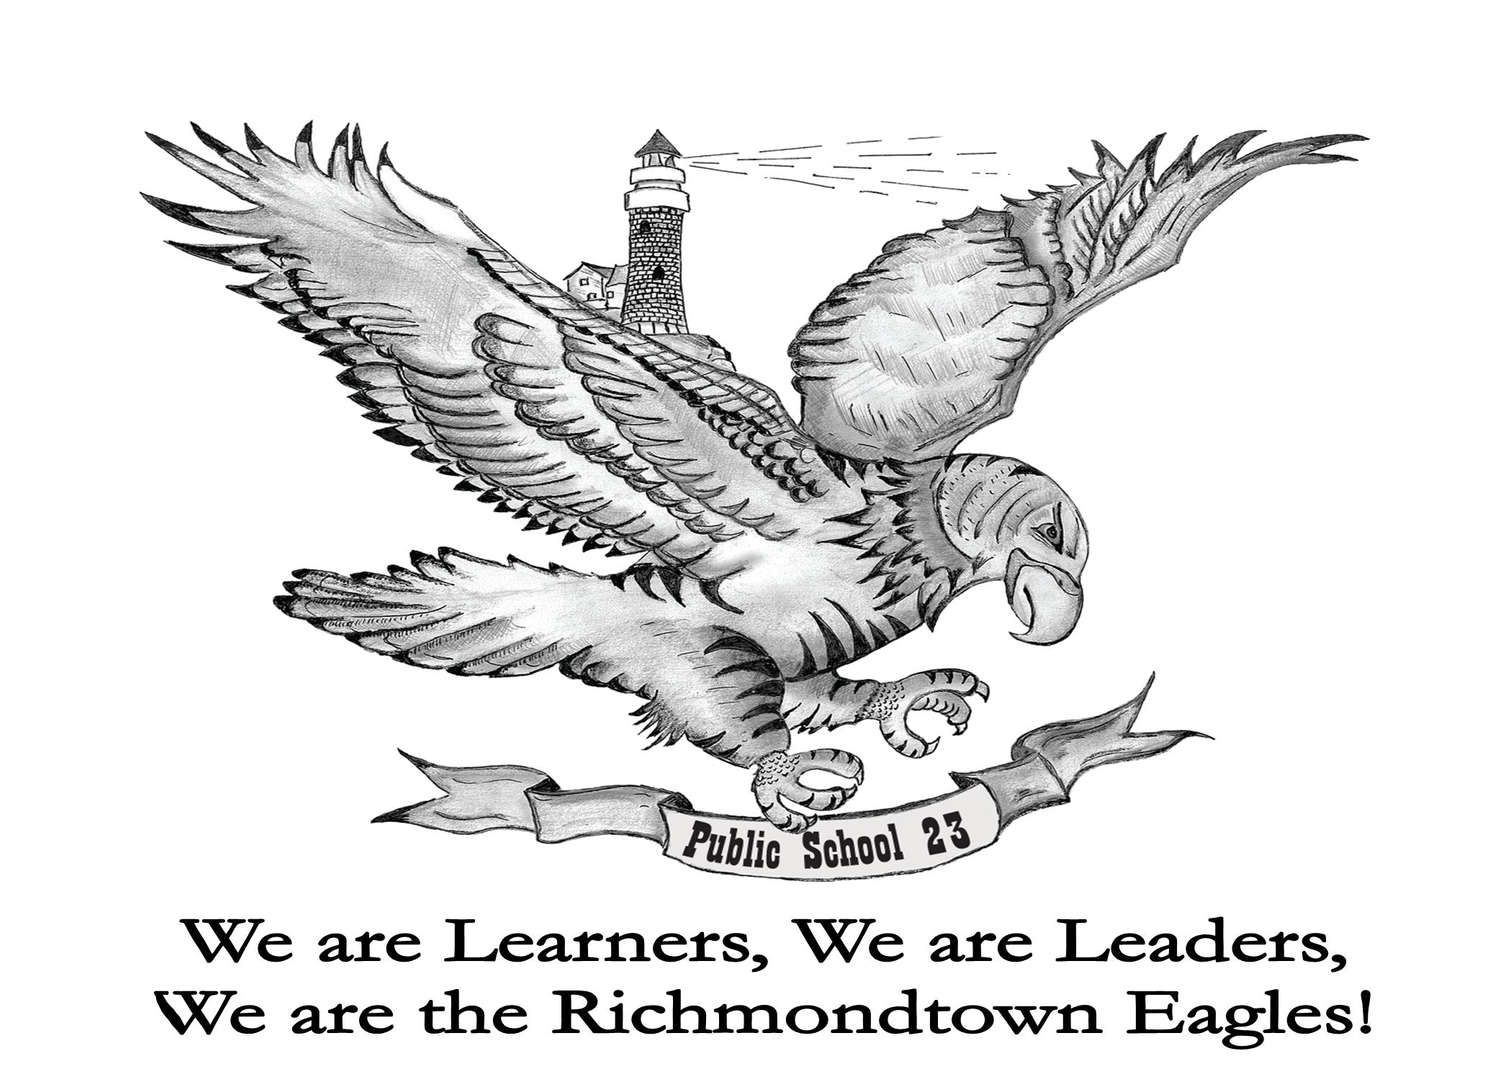 Our school mascot, the eagle, and our motto